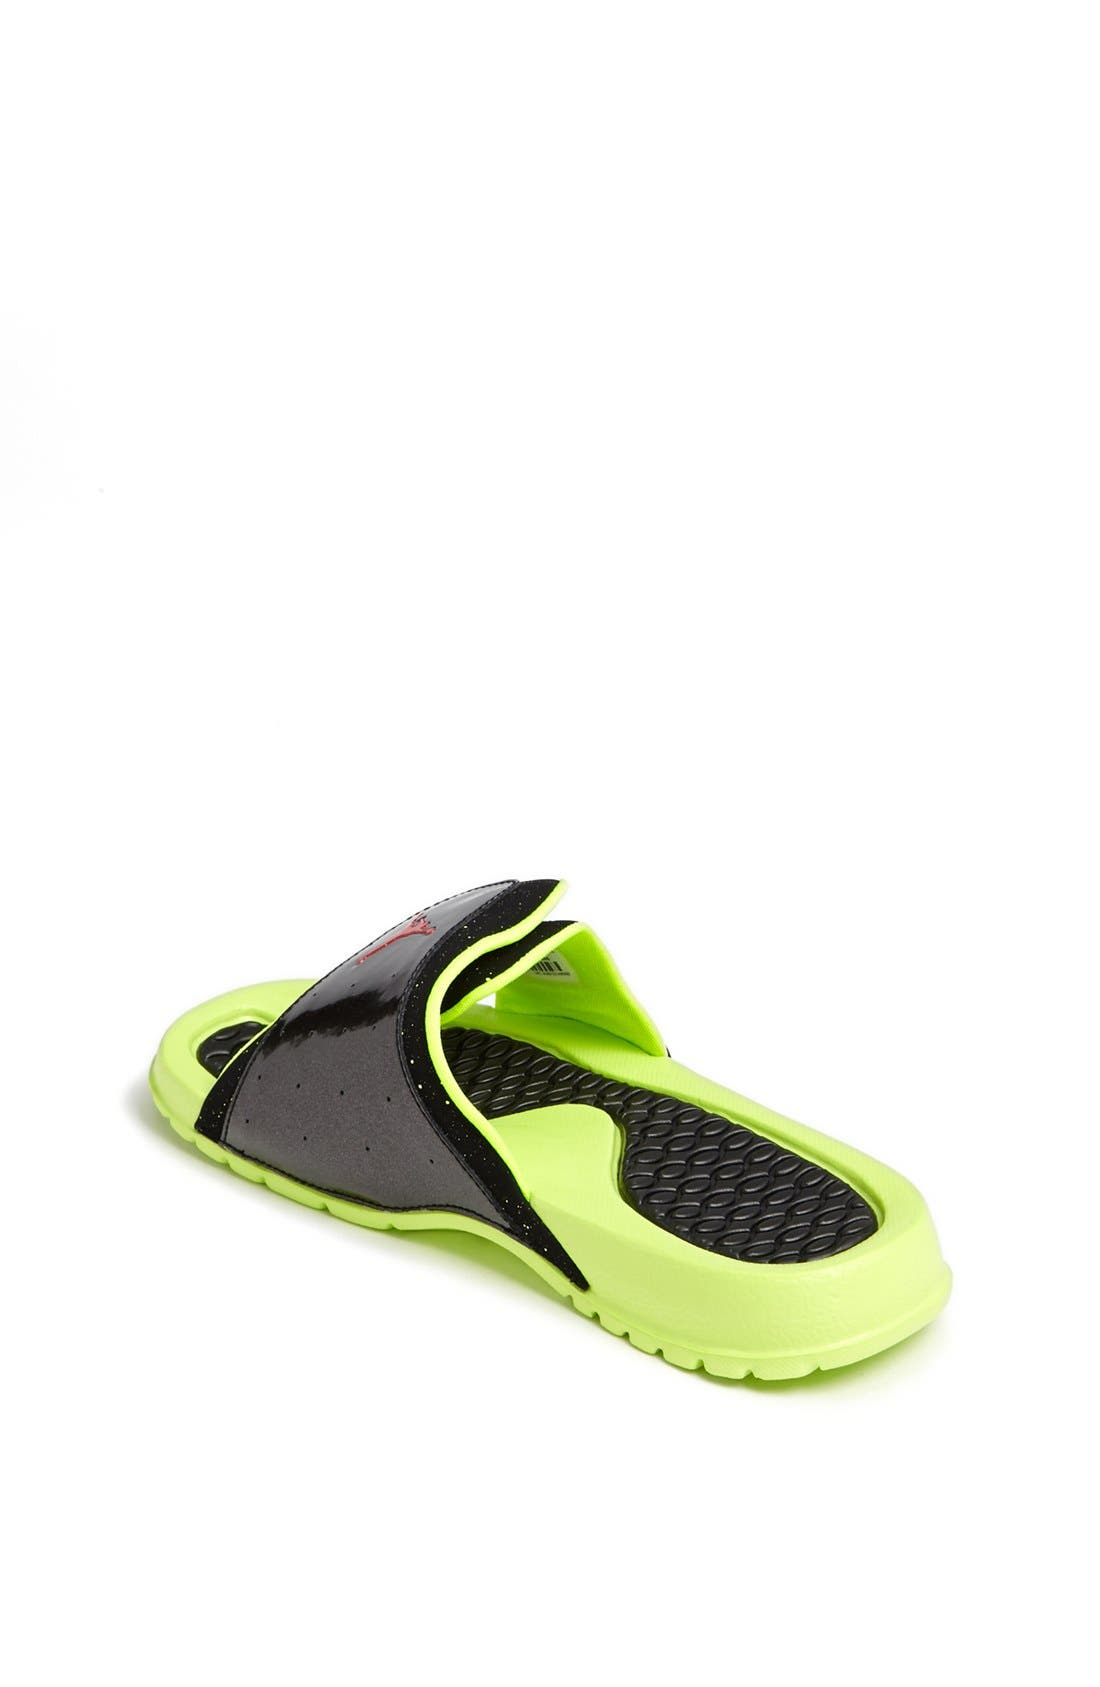 Alternate Image 2  - Nike 'Jordan Hydro II' Sandal (Big Kid)